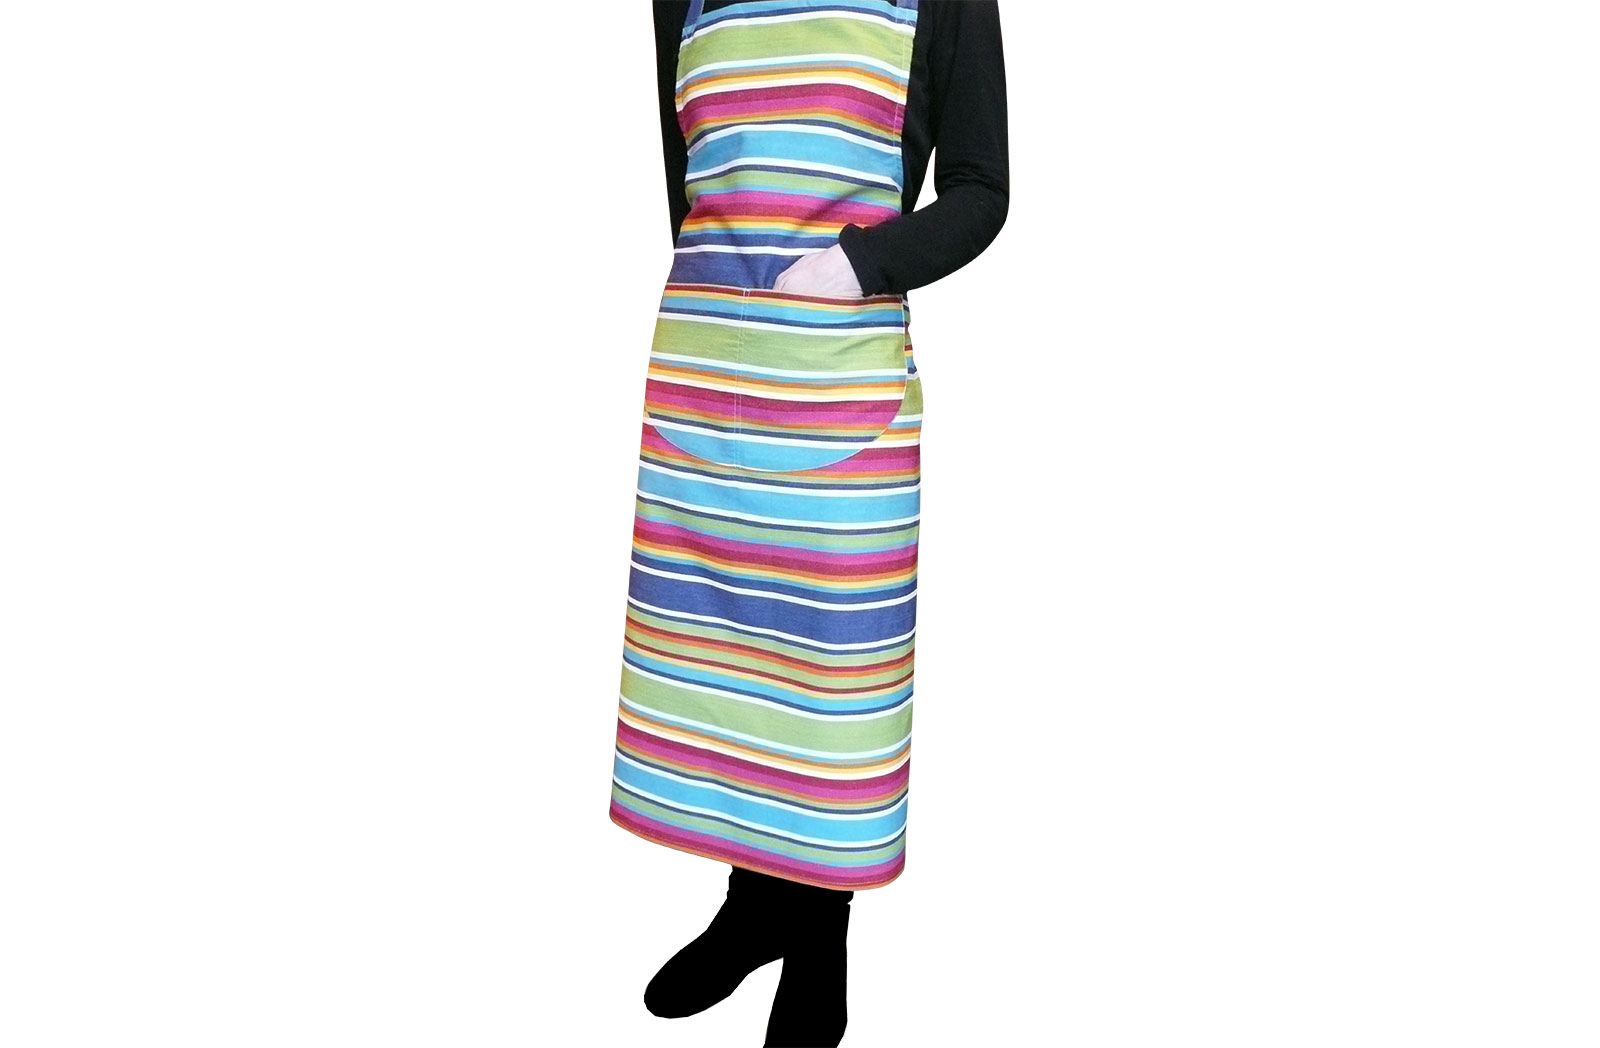 blue, green, red - Striped Cotton Aprons